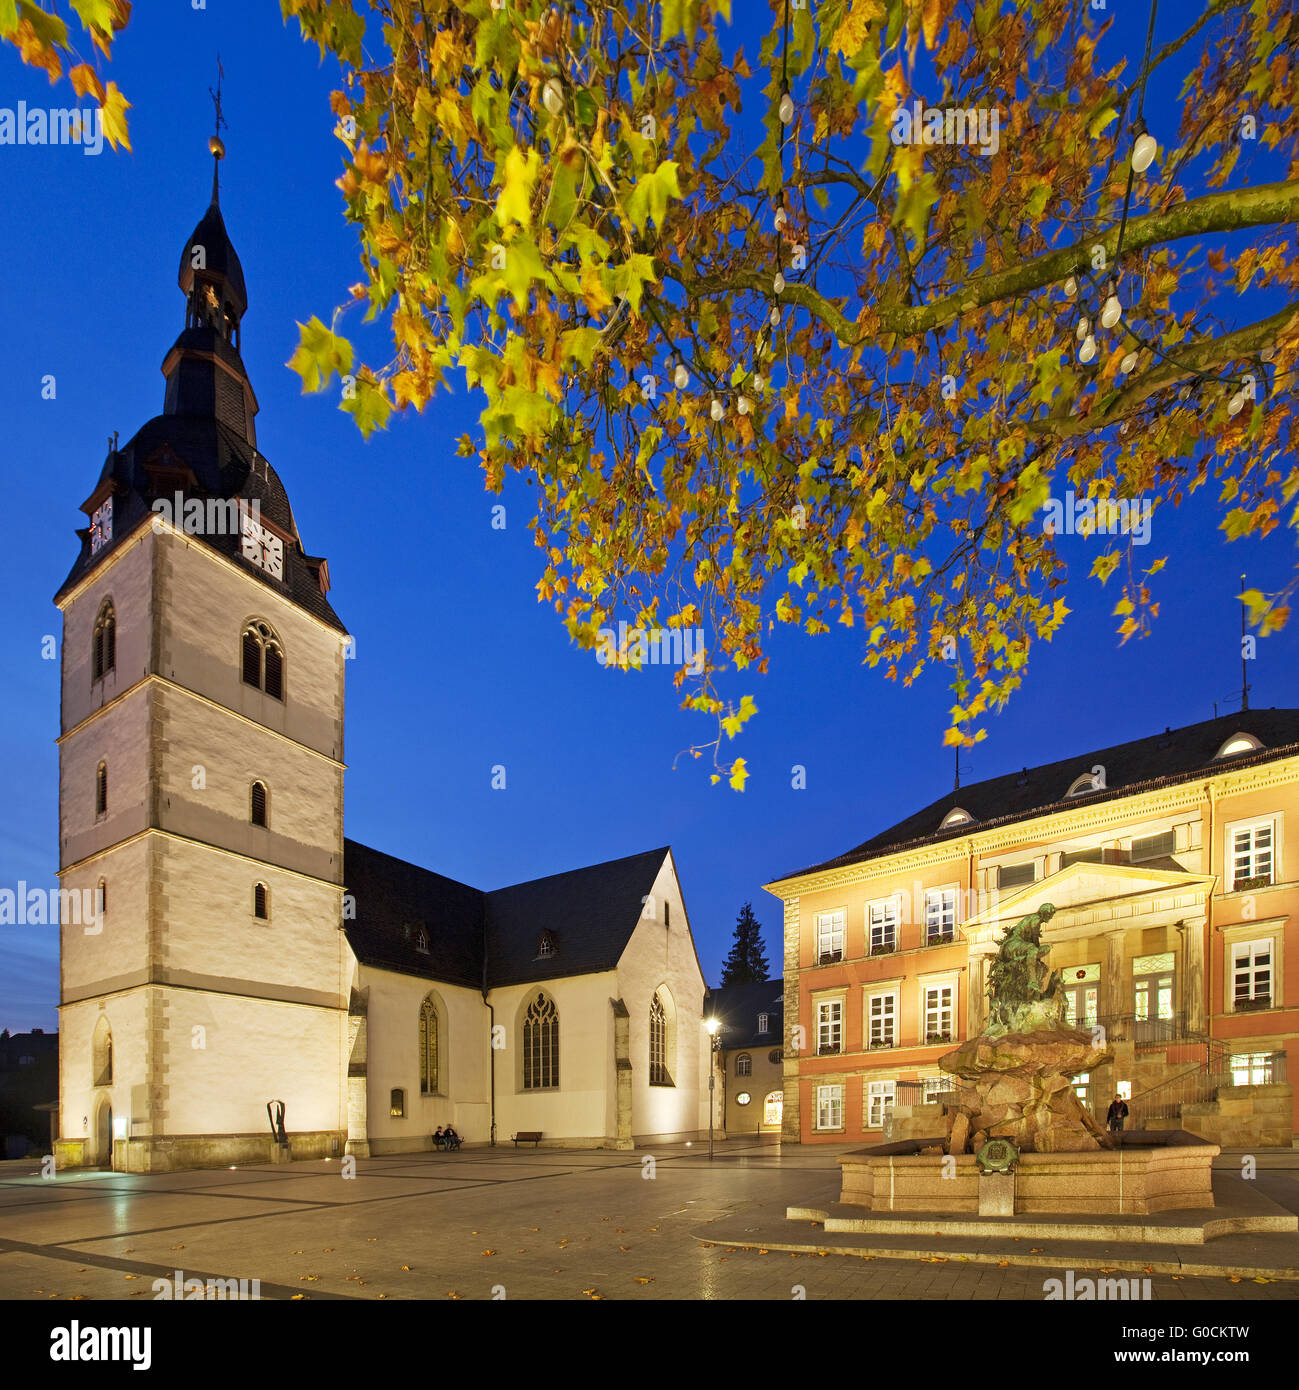 Old Town, Market Church and Town Hall, Detmold - Stock Image